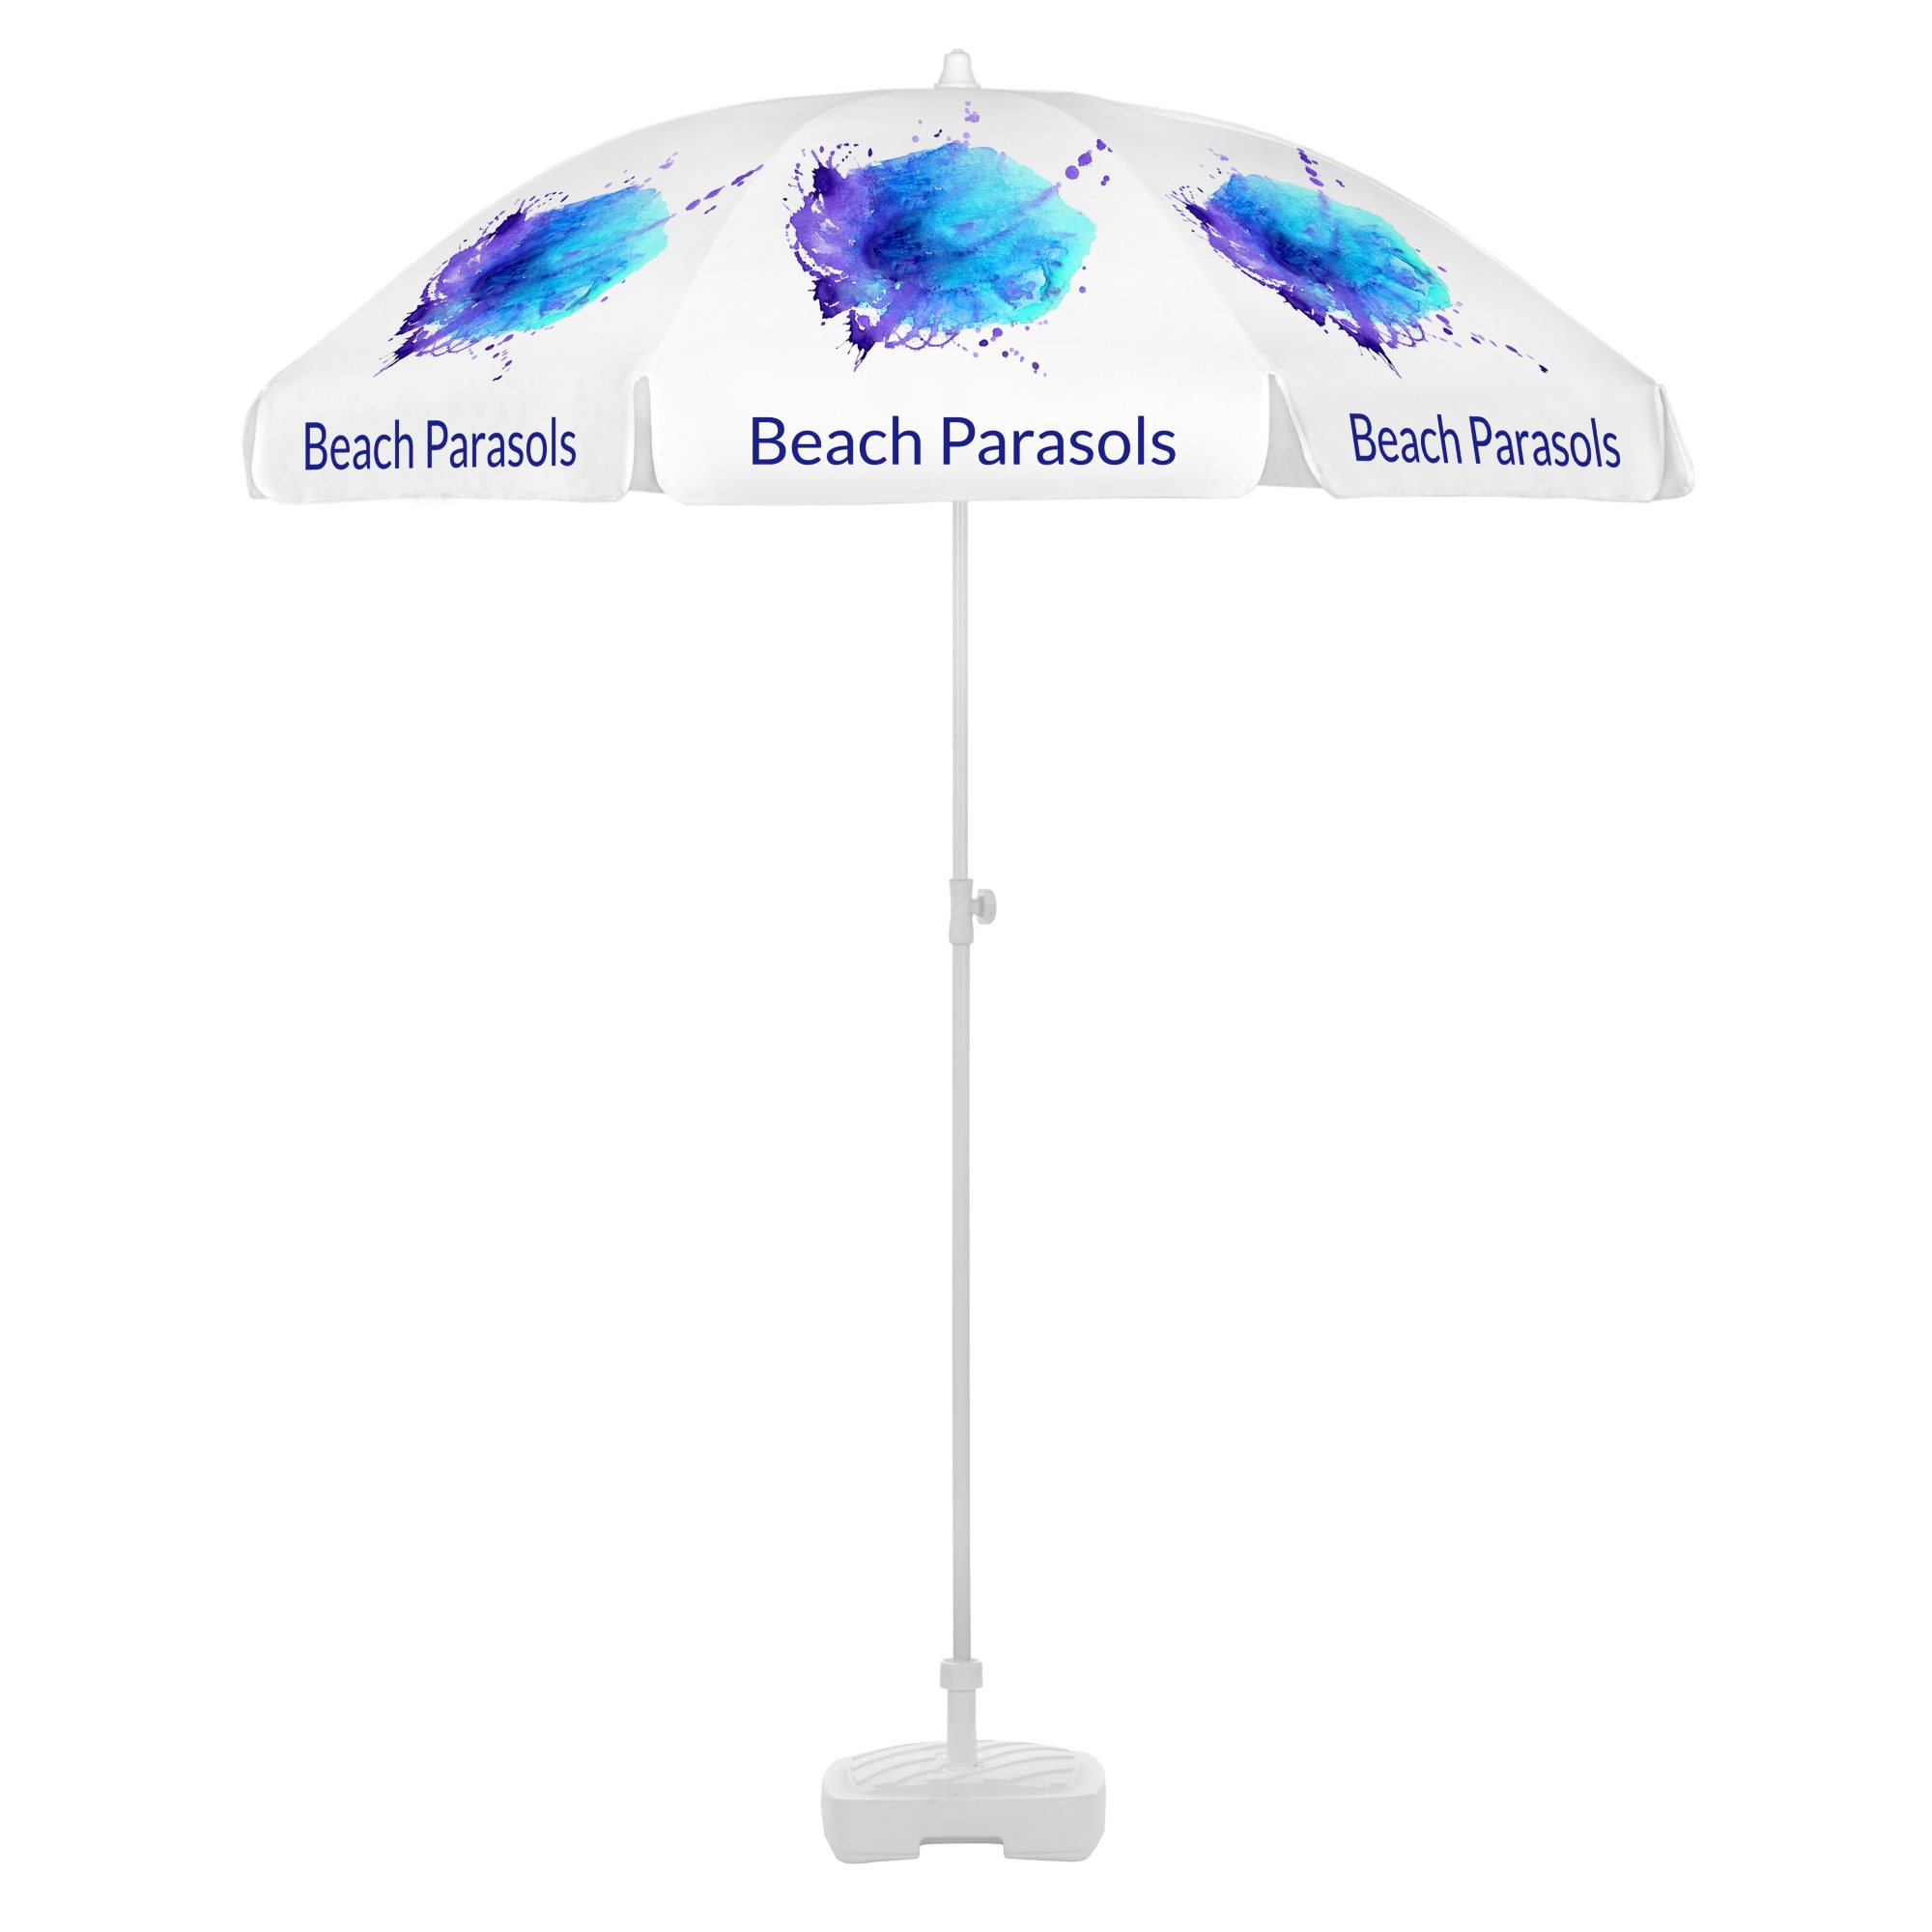 2. Beach Parasols Octagonal 1,8m with fairing